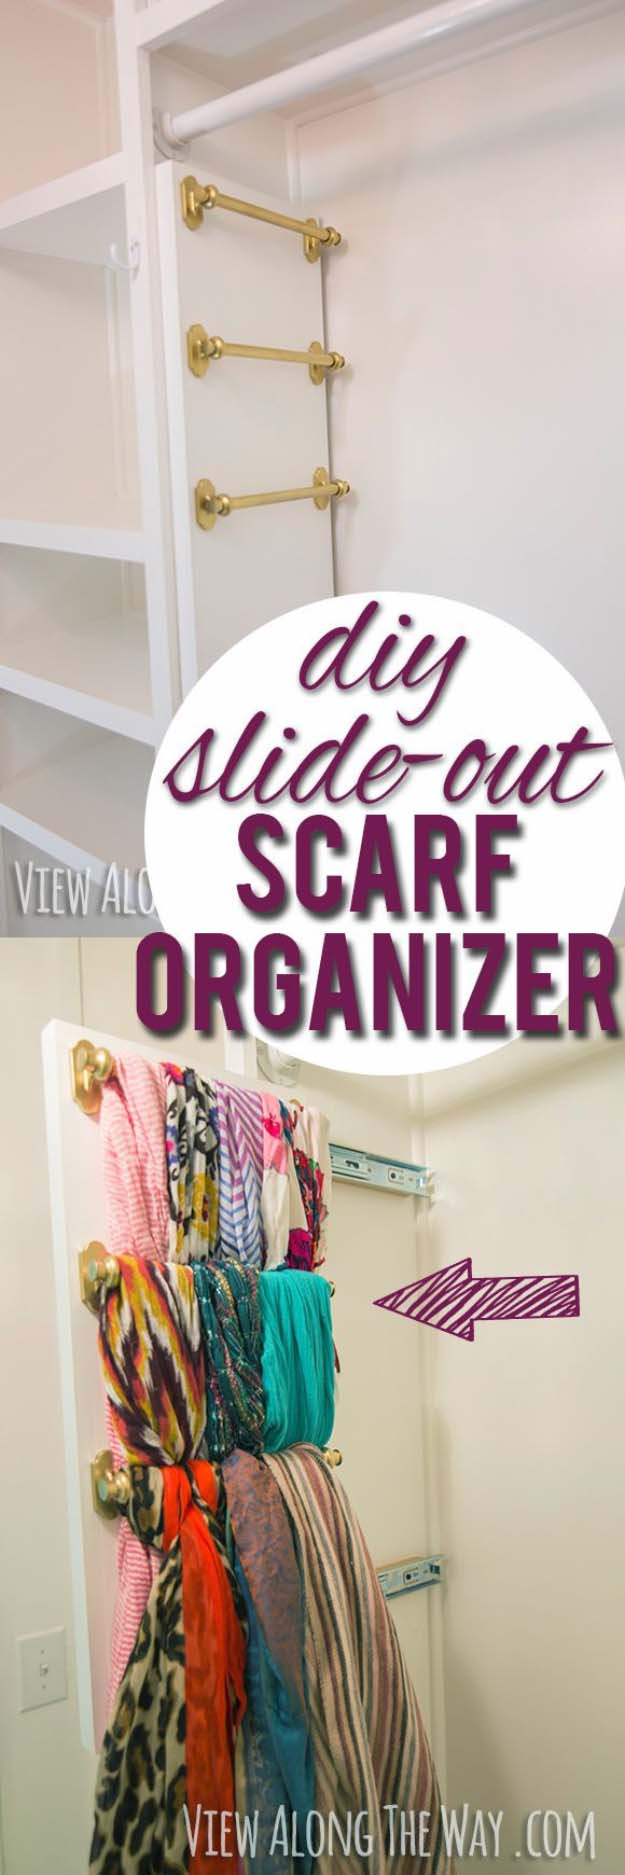 Closet Organization, DIY Slide-out Scarf and Belt Organizers